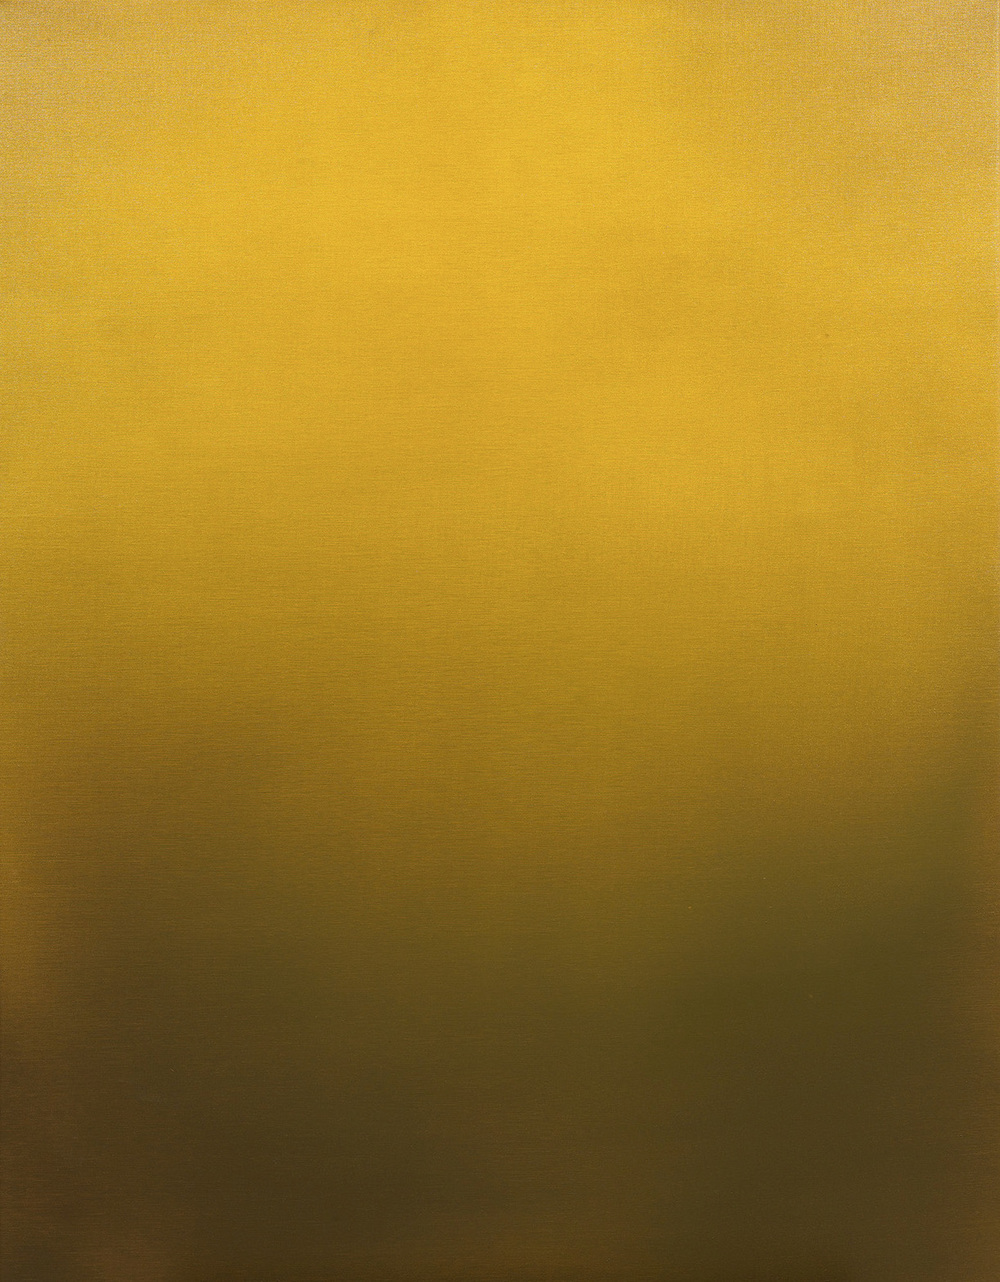 Magnus Thorén, Yellow fades, 2015, oil on canvas, 135 x 95 cm